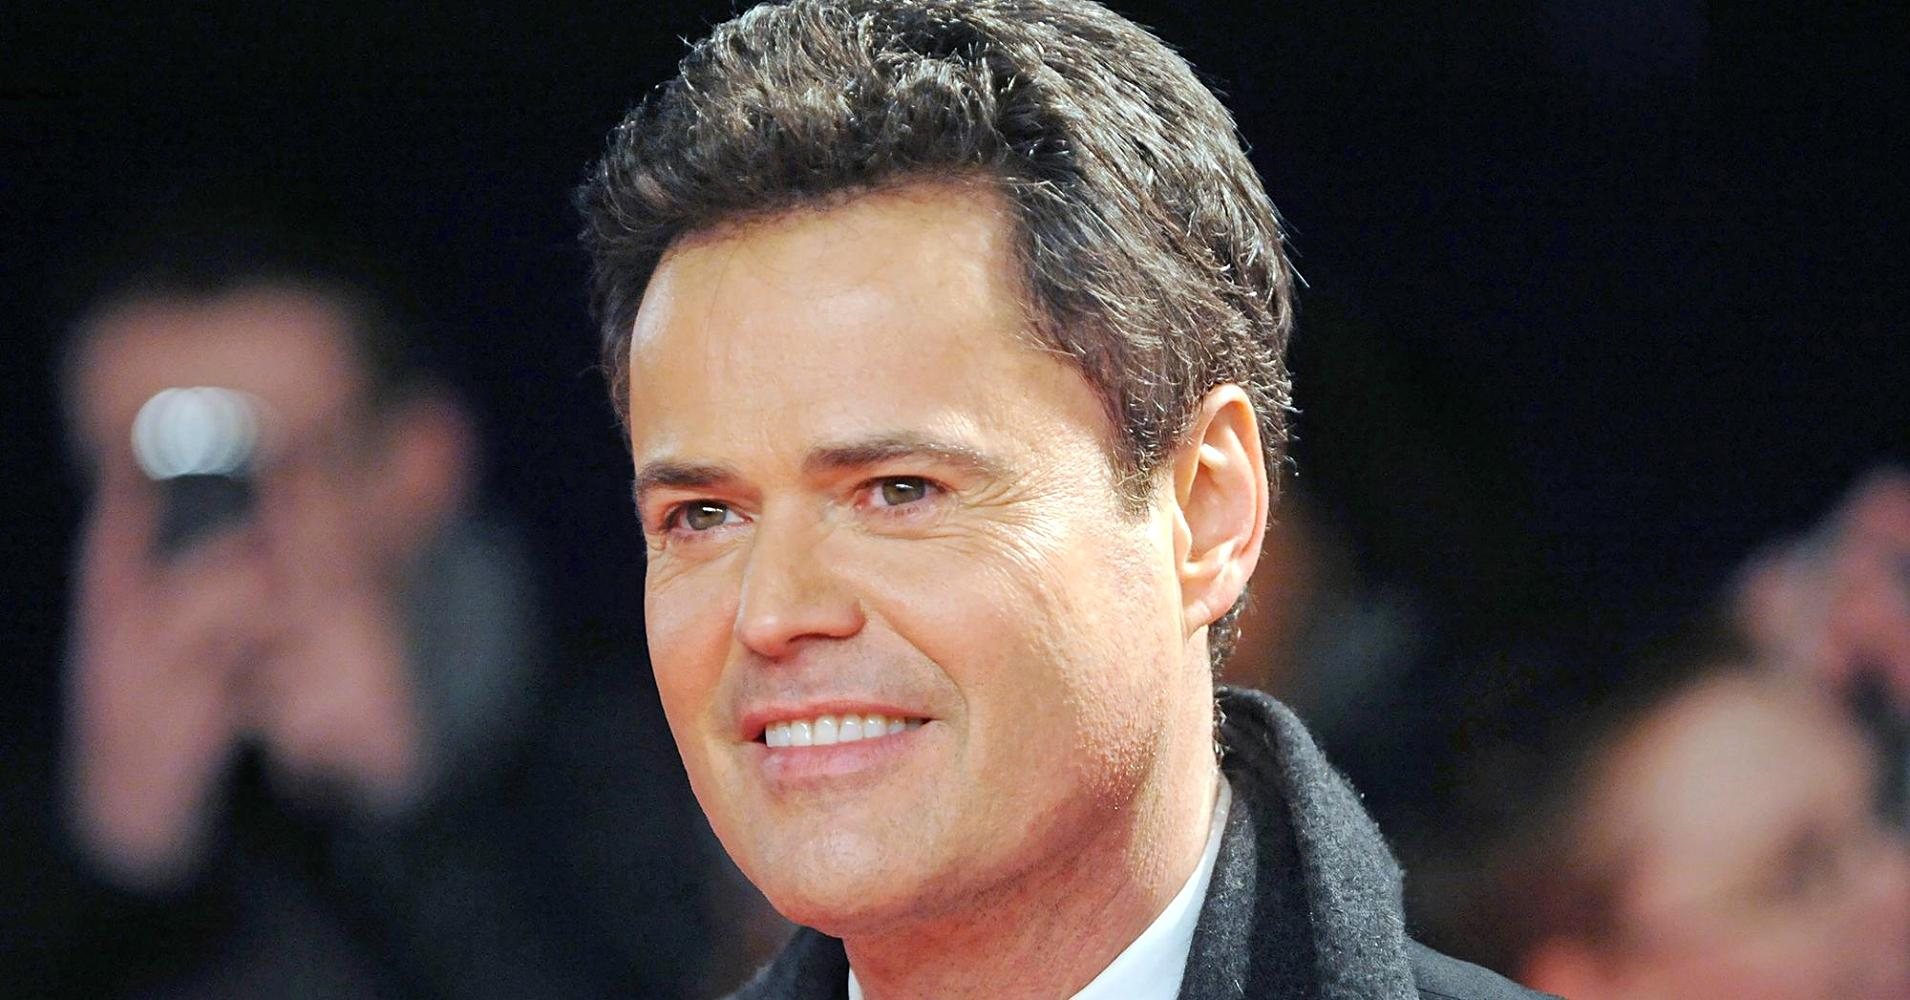 donny osmond photosdonny osmond - puppy love, donny osmond young, donny osmond would i lie to you, donny osmond soldier of love, donny osmond mp3, donny osmond 2016, donny osmond young love, donny osmond youtube, donny osmond when i fall in love, donny osmond michael jackson, donny osmond lyrics, donny osmond - why, donny osmond barbie, donny osmond - a time for us, donny osmond your song, donny osmond photos, donny osmond purple, donny osmond lp, donny osmond 2017, donny osmond discogs